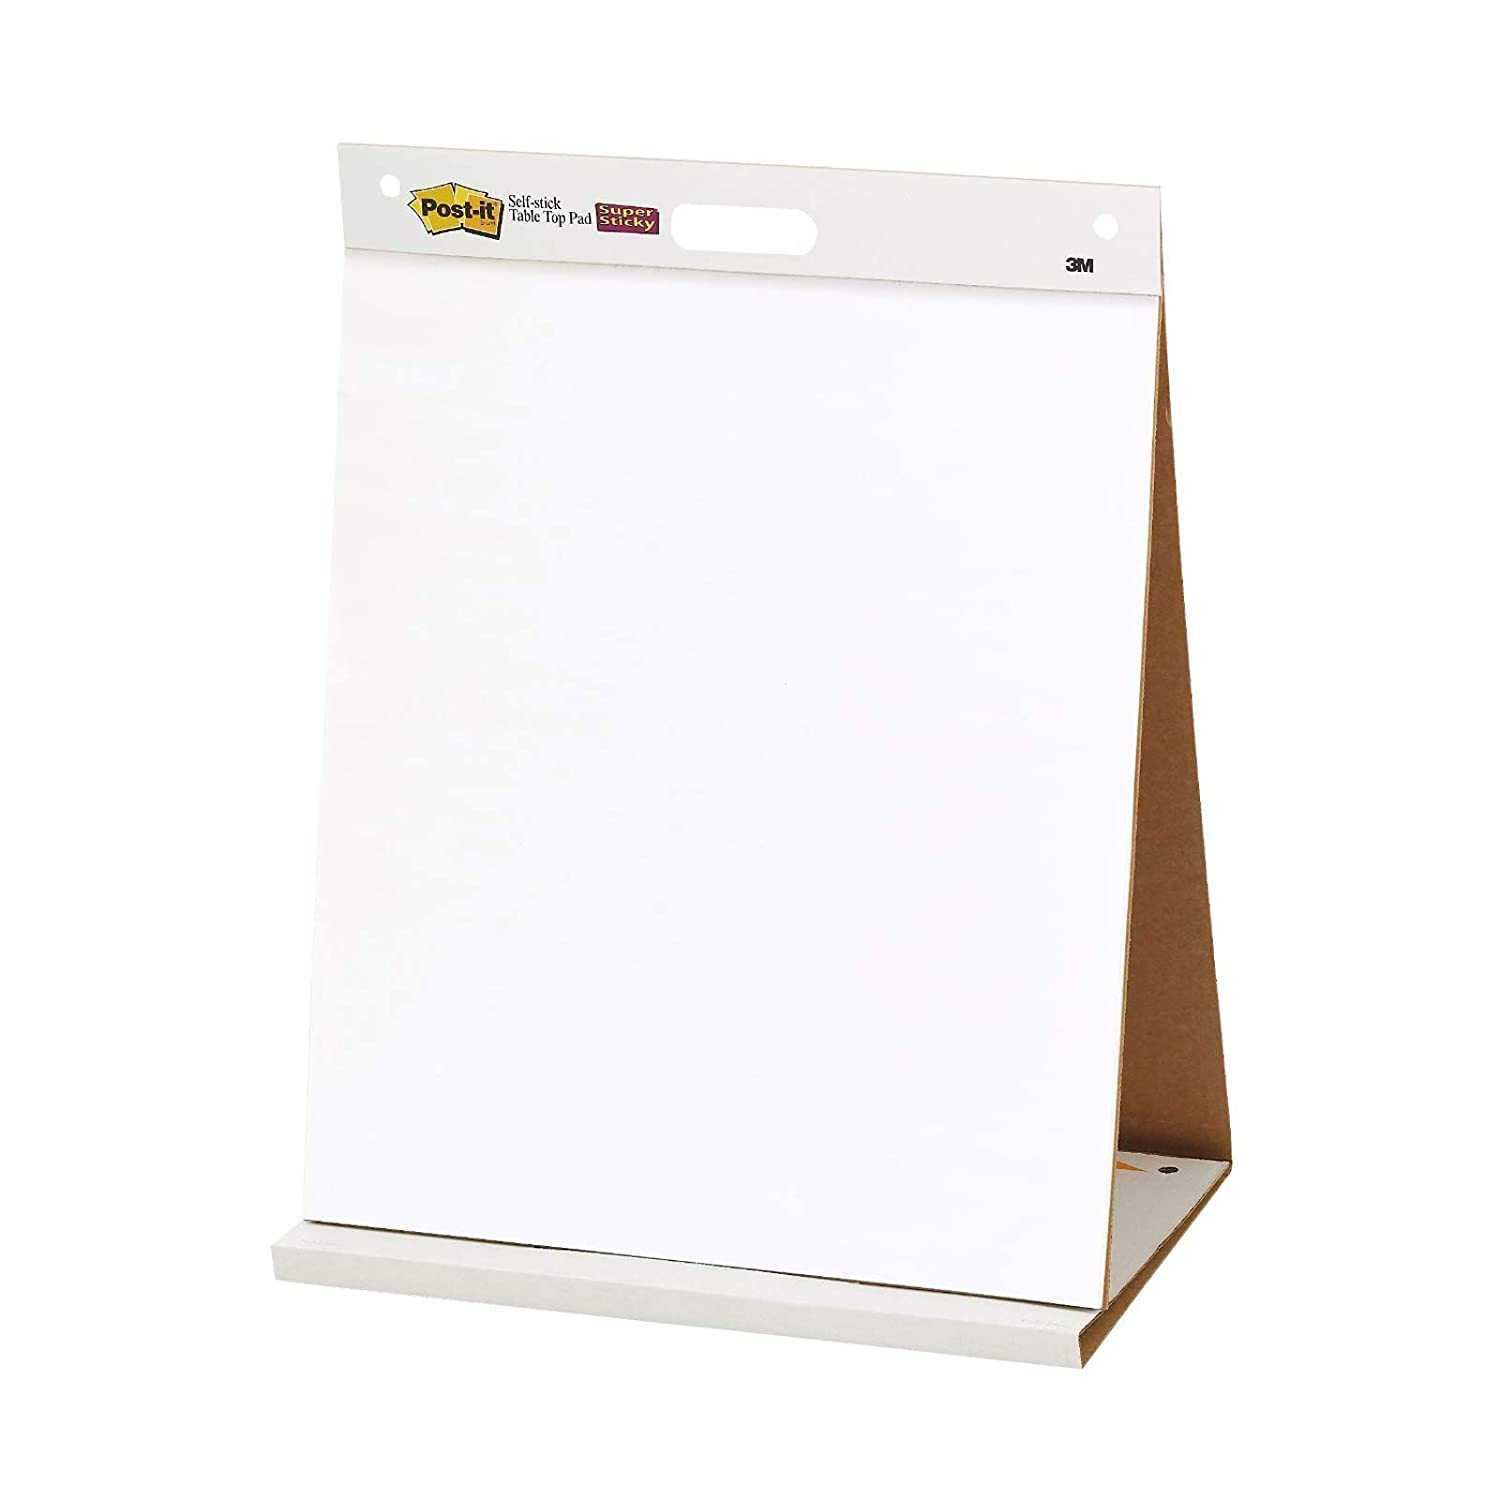 Post-it Table Top Easel Pad – Portable flip chart with foldable tabletop stand - 1 x note pad with 20 self-adhesive sheets, 584 mm x 508 mm